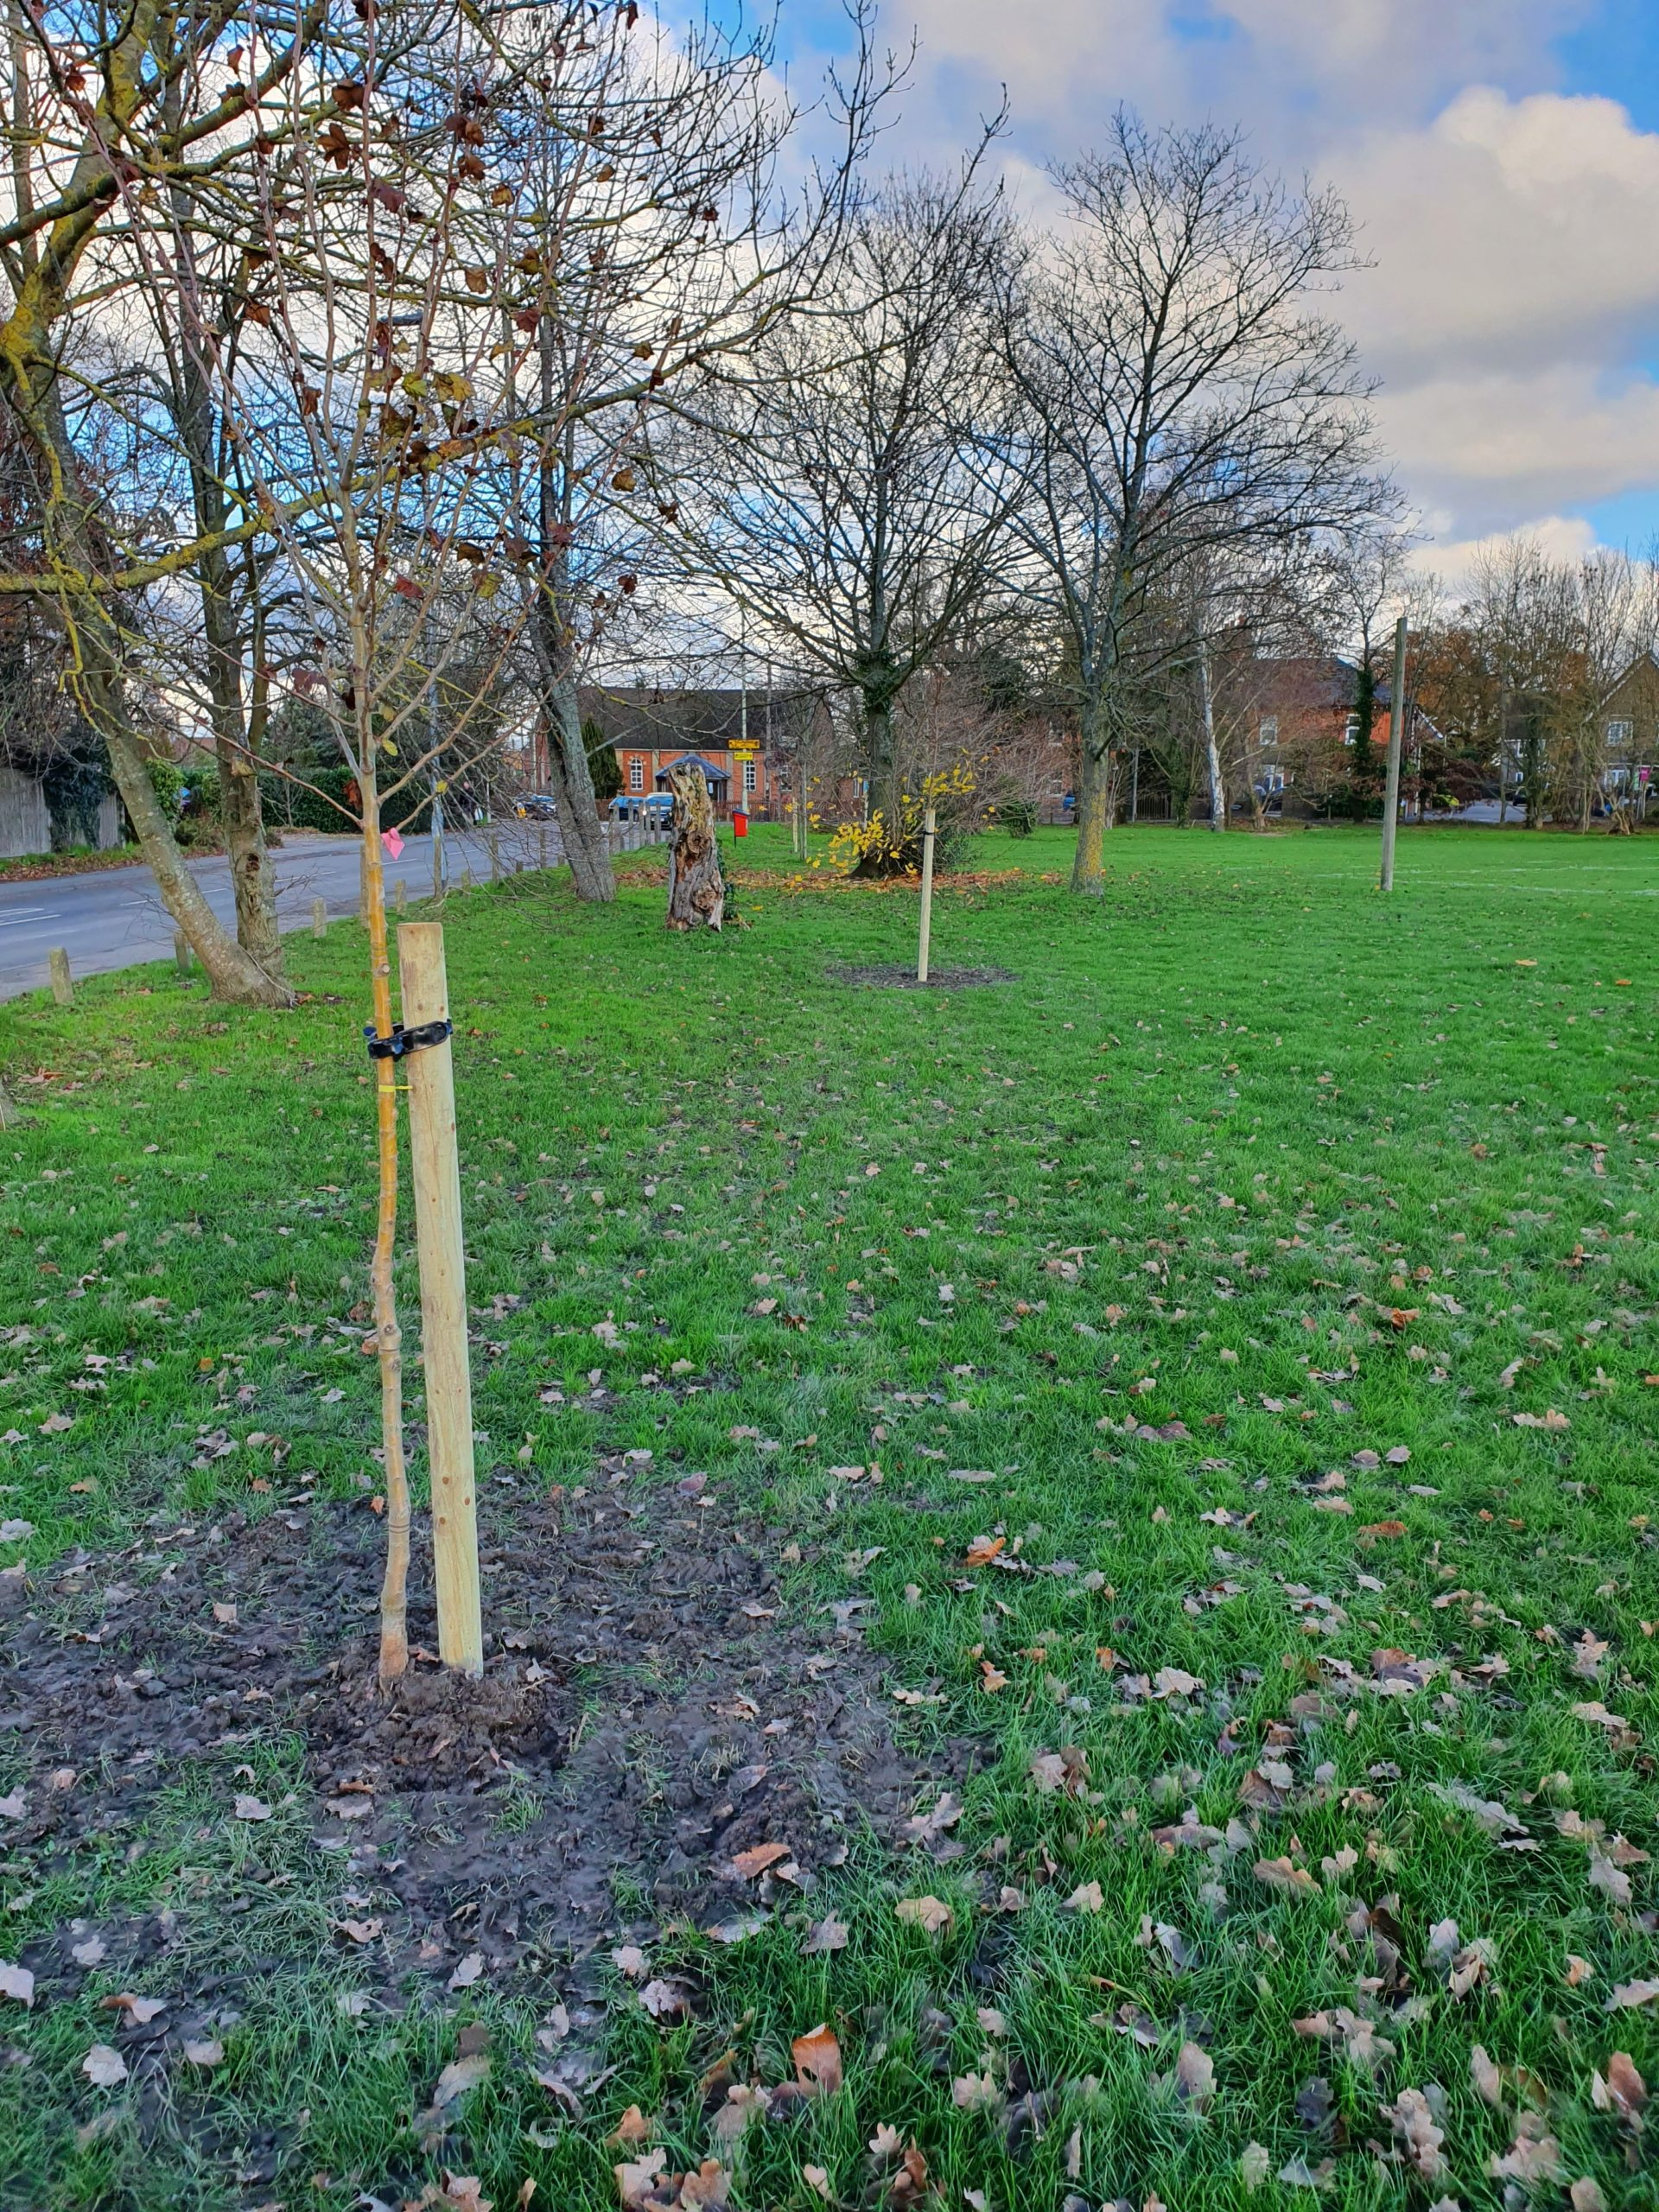 New trees planted at Bearwood Recreation Ground